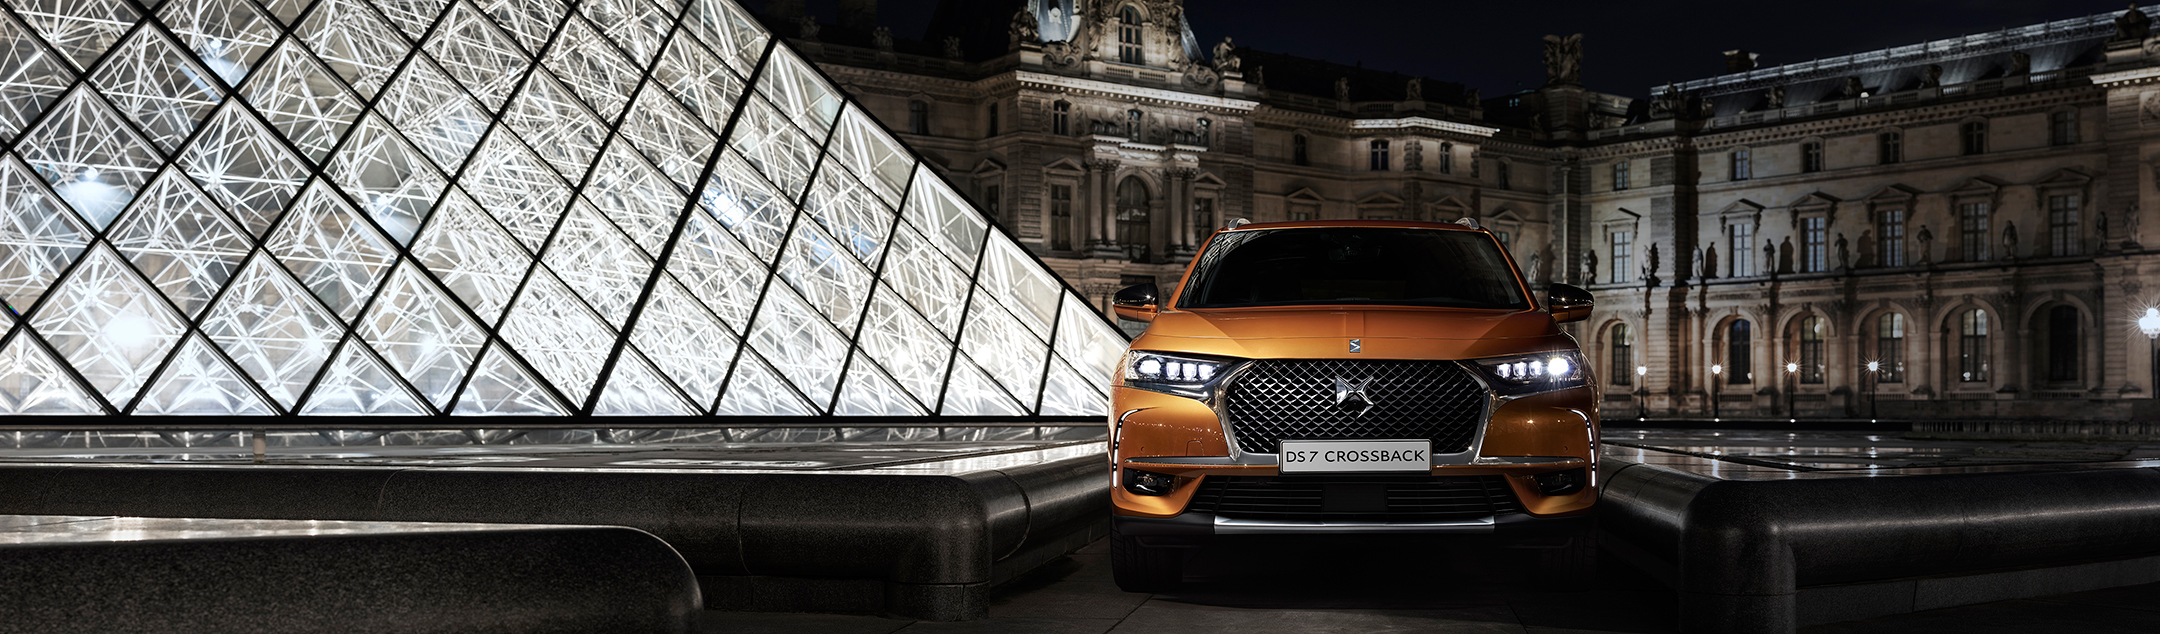 DS 7 CROSSBACK - 2017 - front-face / face-avant - photo Pyramide du Louvre